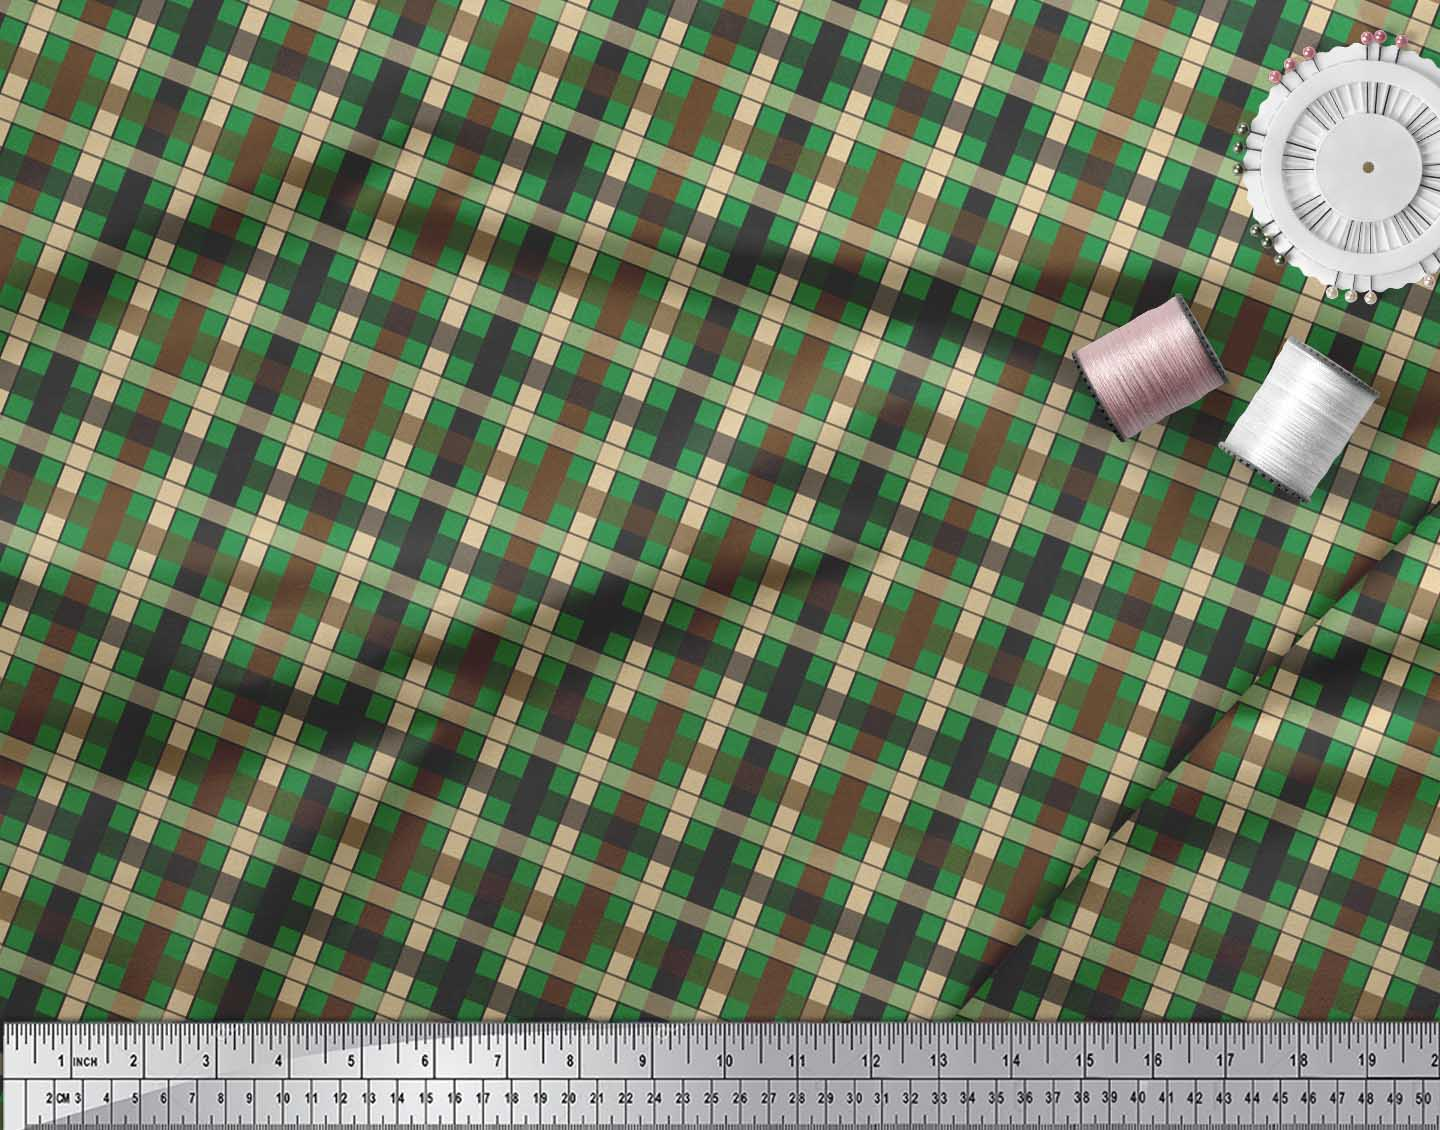 Soimoi-Green-Cotton-Poplin-Fabric-Check-Check-Print-Sewing-Fabric-sno thumbnail 4